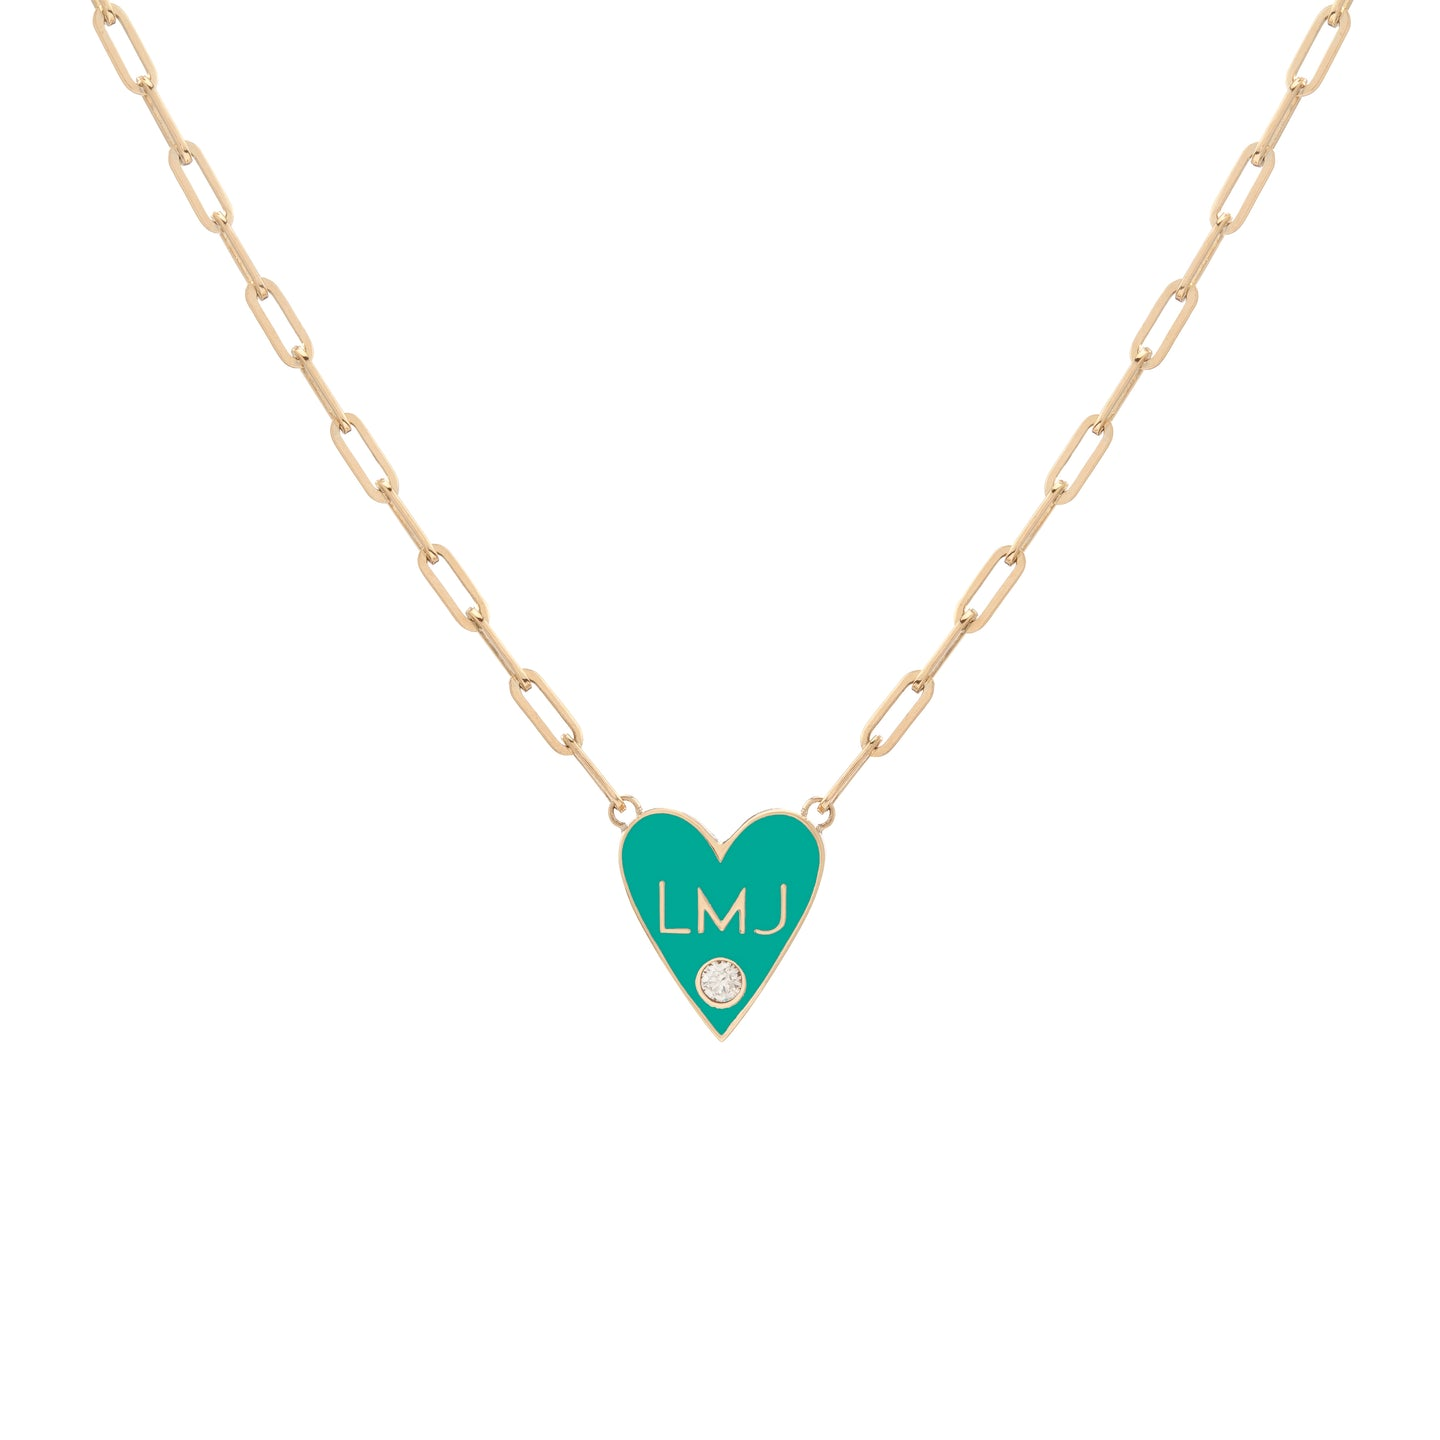 Medium Family Enamel Heart Pendant with 3 Horizontal Letters and Diamond